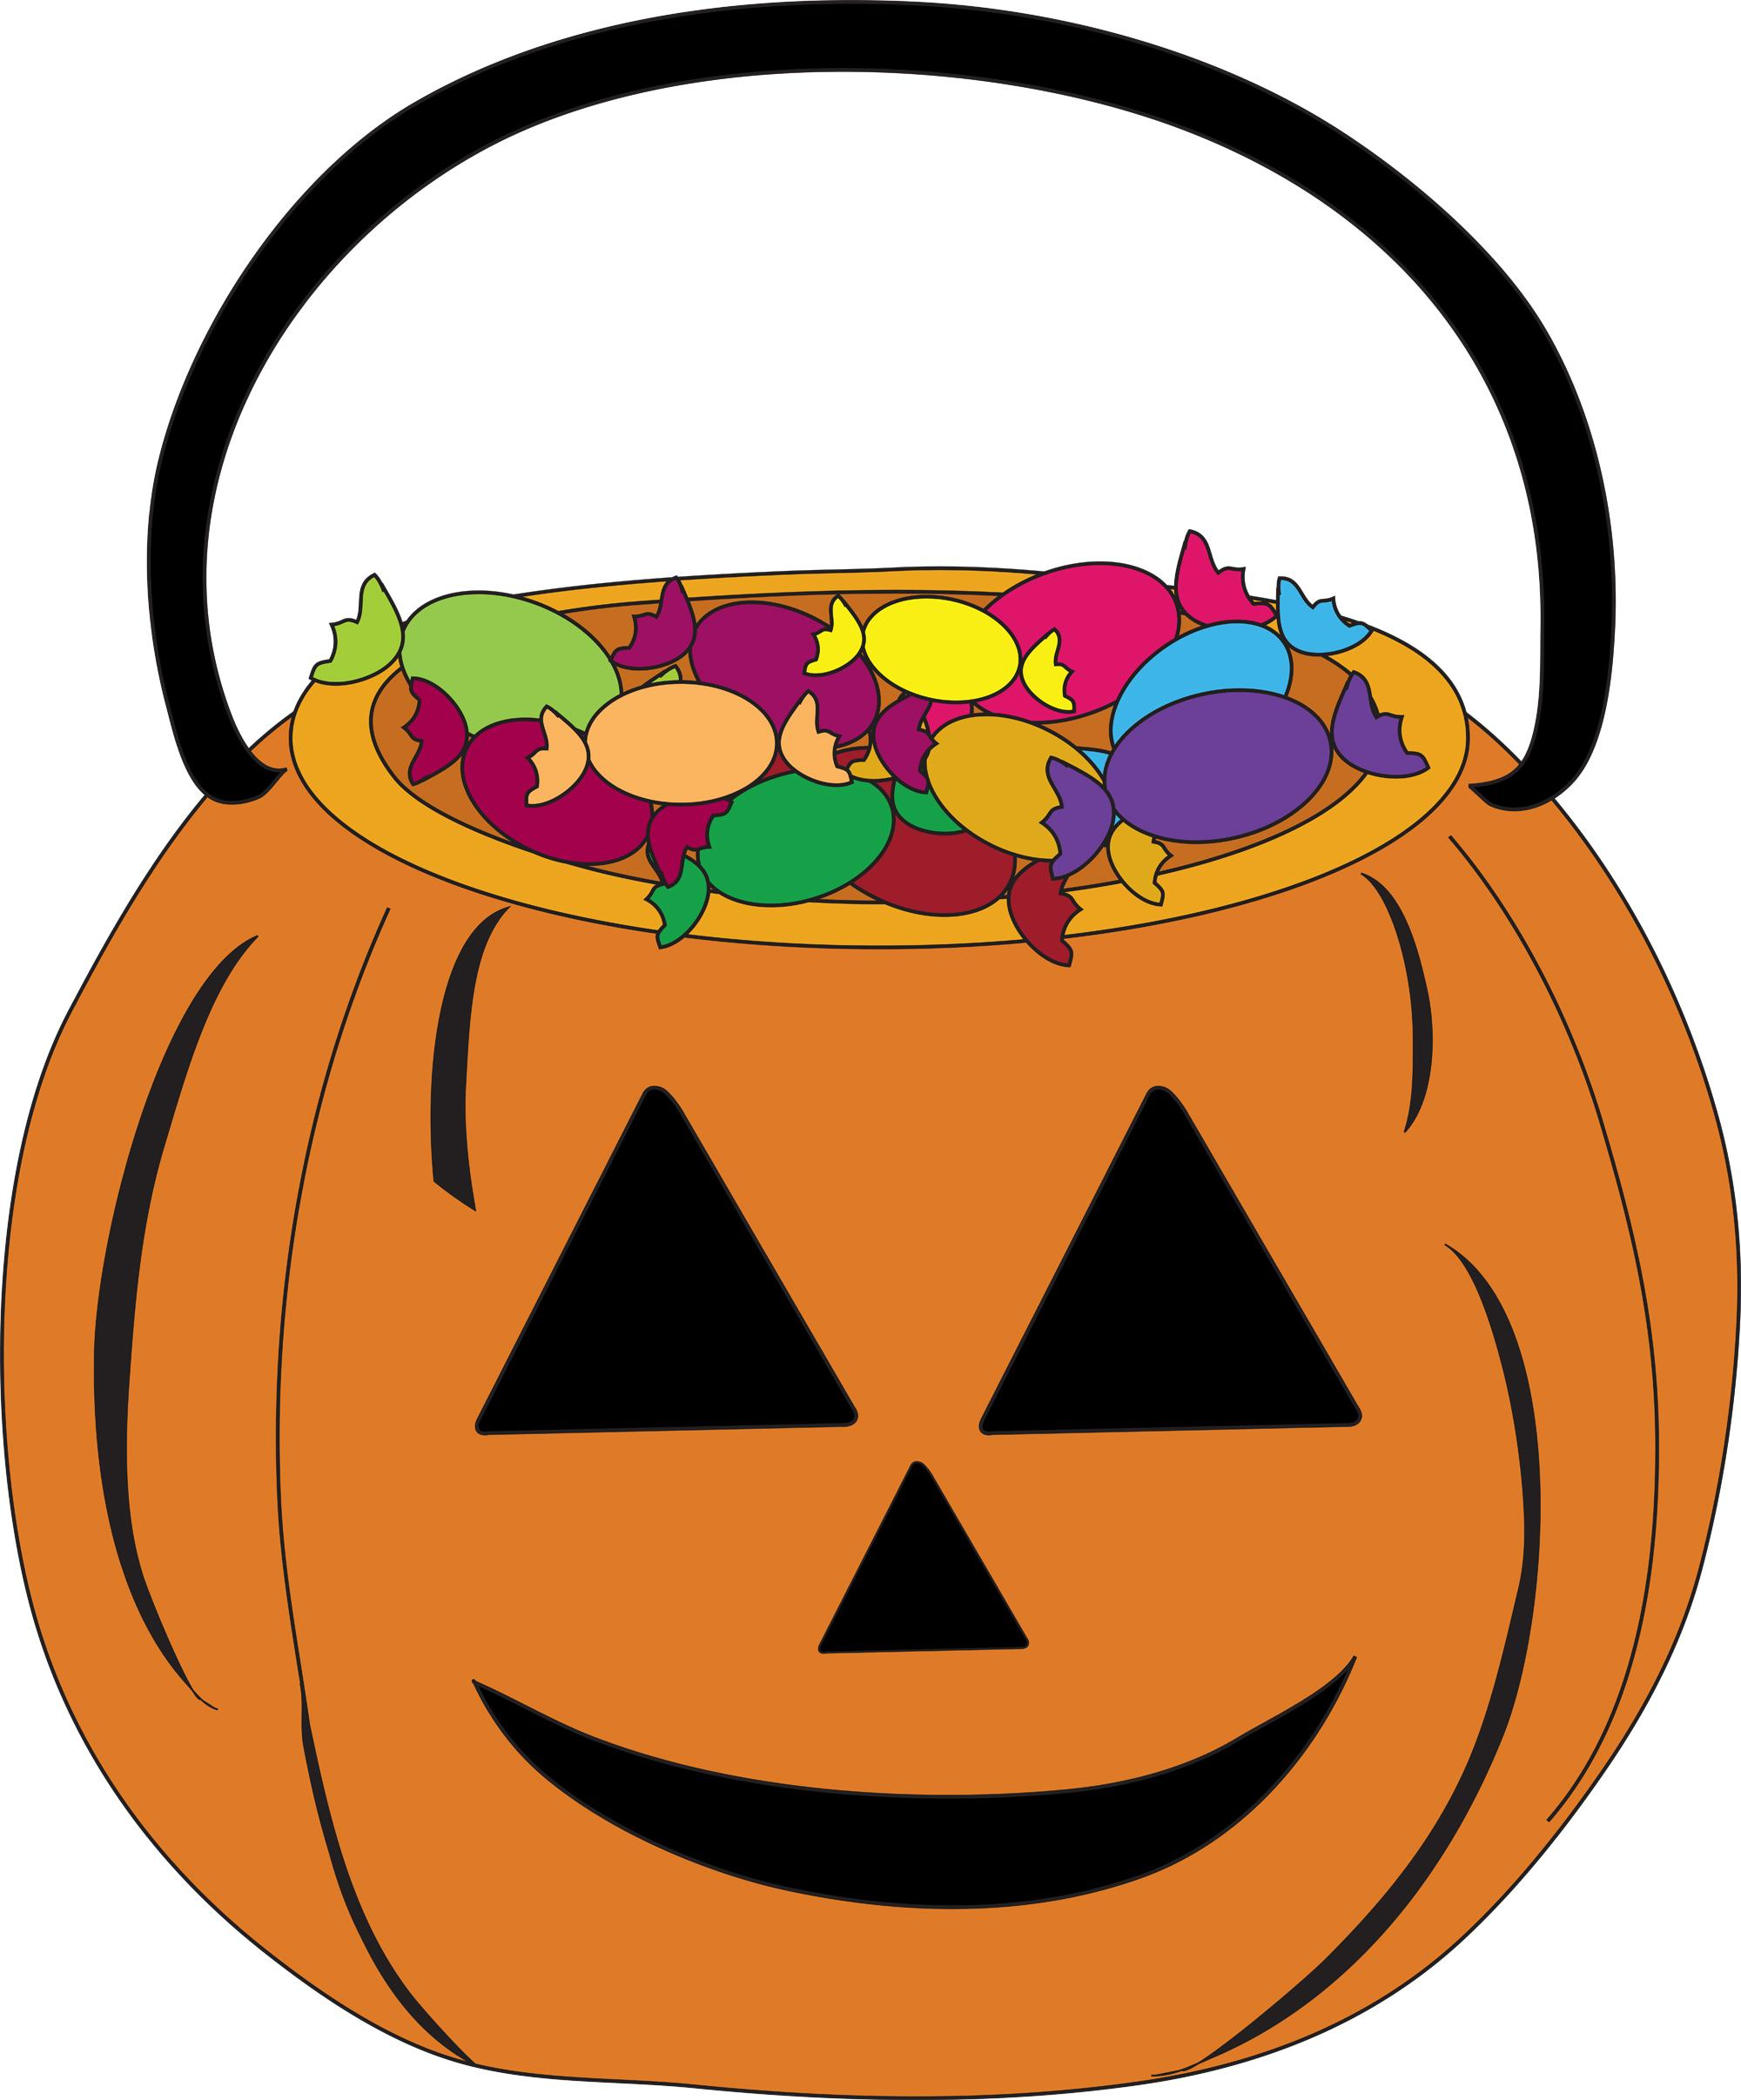 Halloween free clipart pictures clip free download Halloween Candy Clip Art Free Clipart Images 2 clip free download